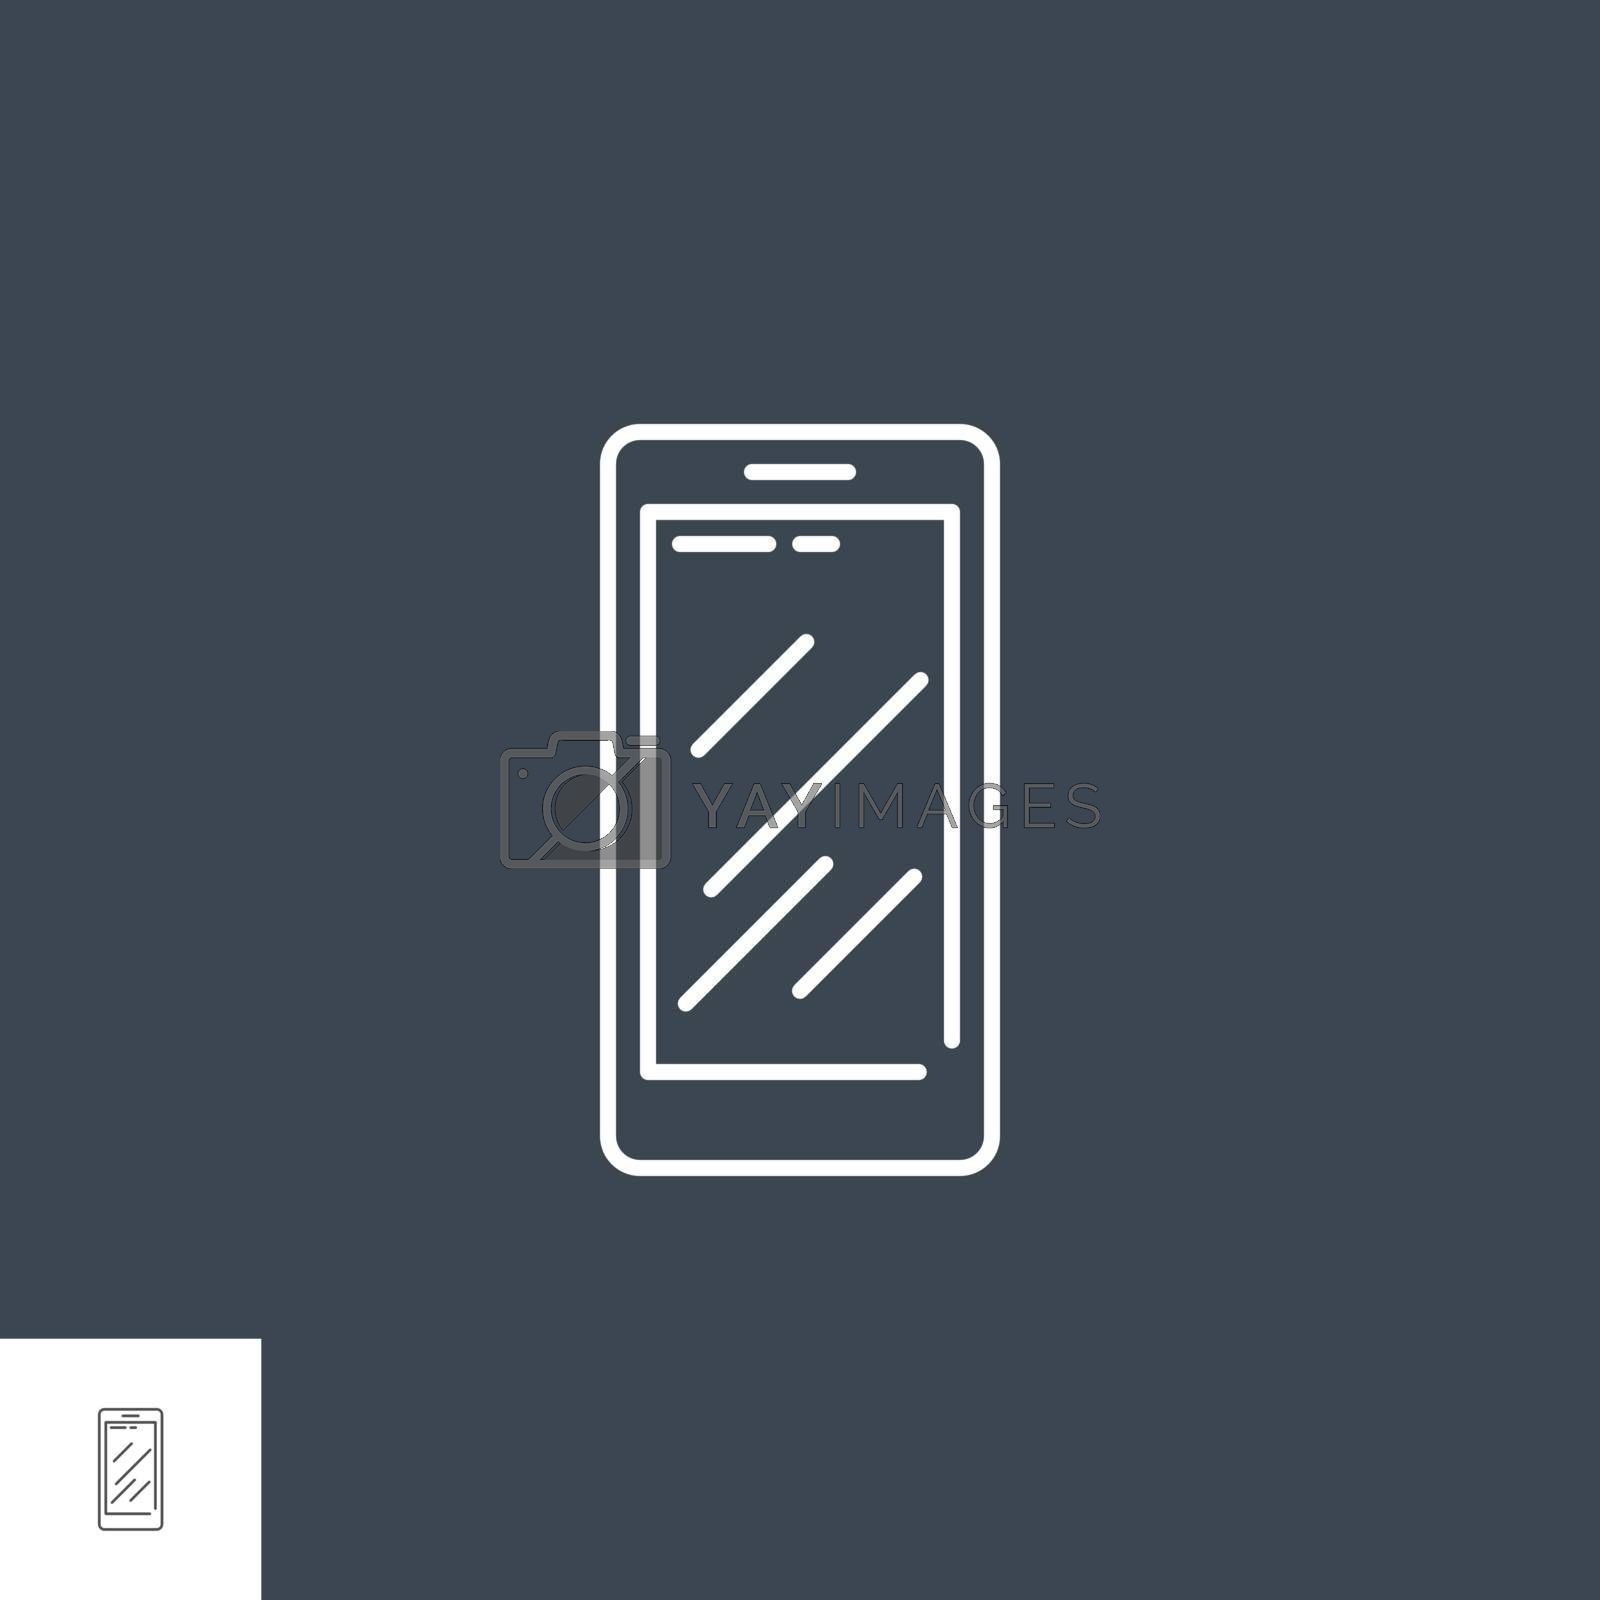 Smartphone Related Vector Line Icon. Isolated on Black Background. Editable Stroke.